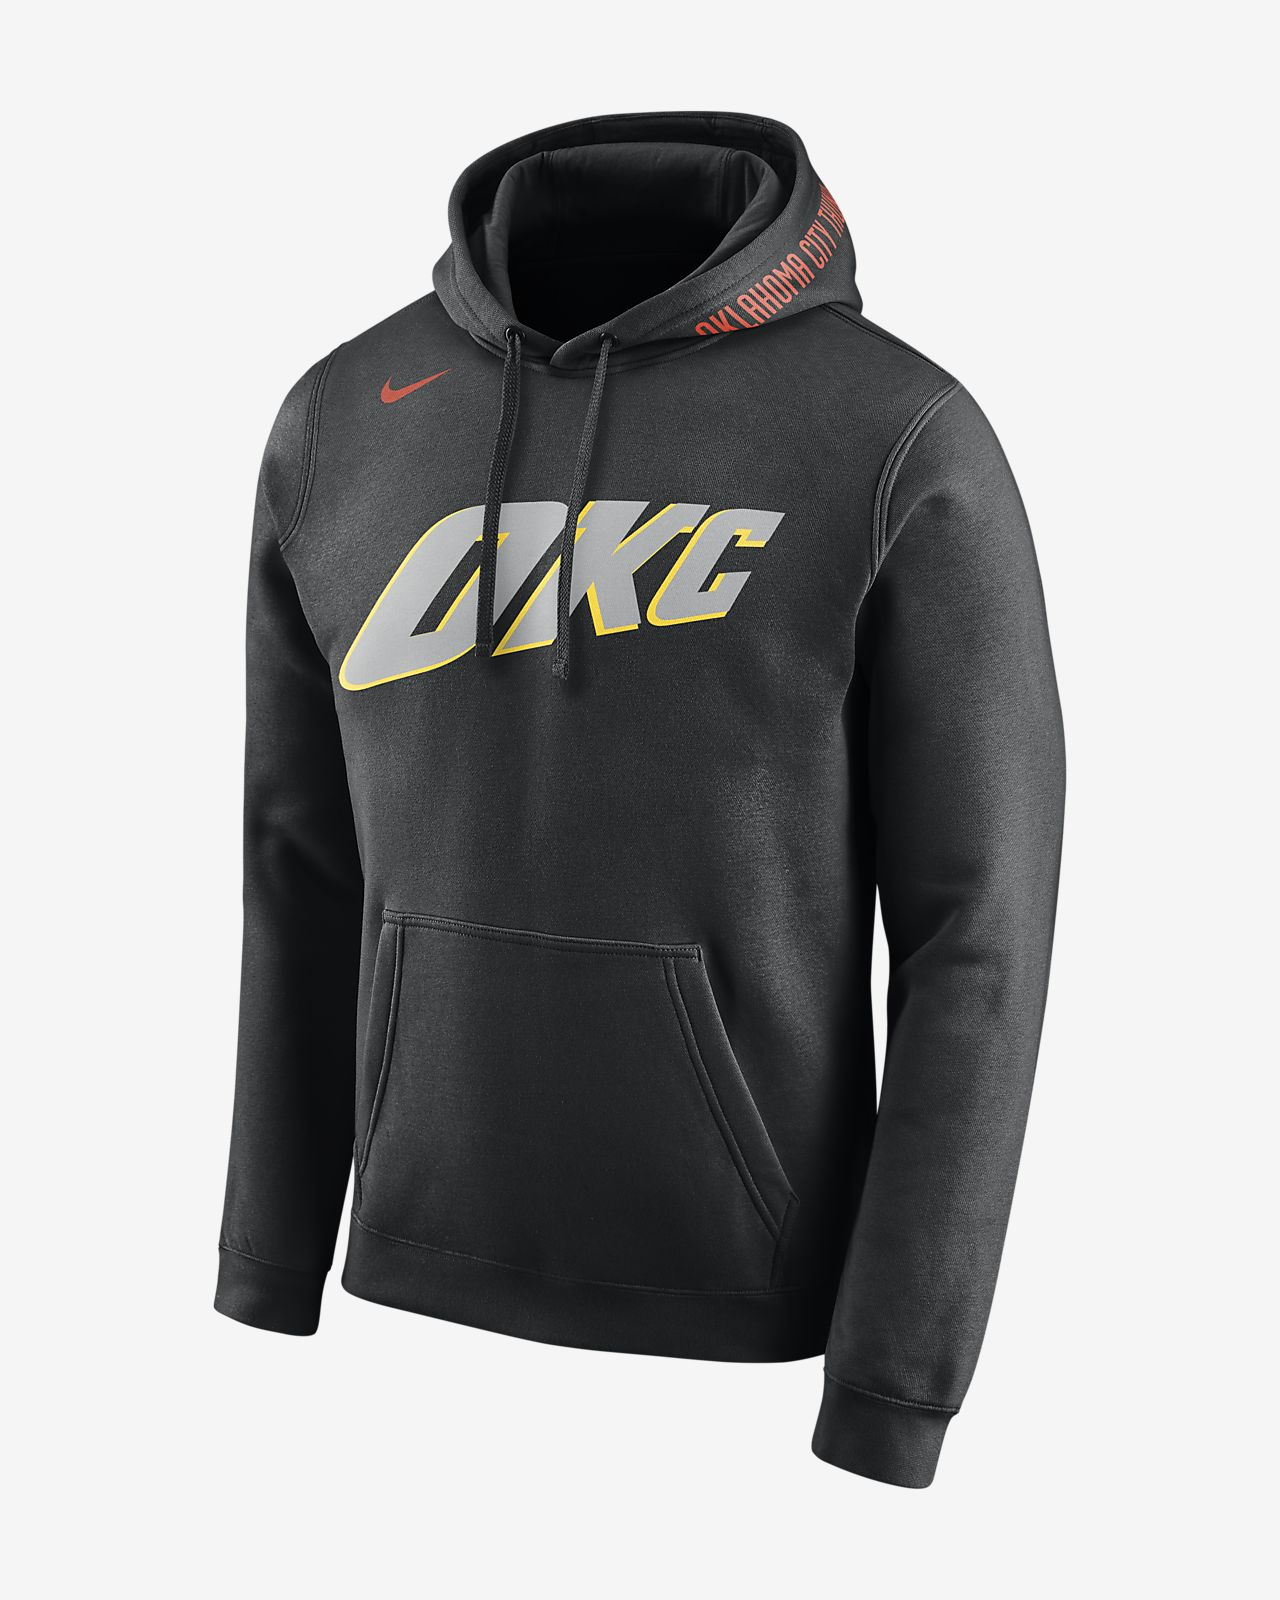 Oklahoma City Thunder City Edition Nike Men's NBA Hoodie